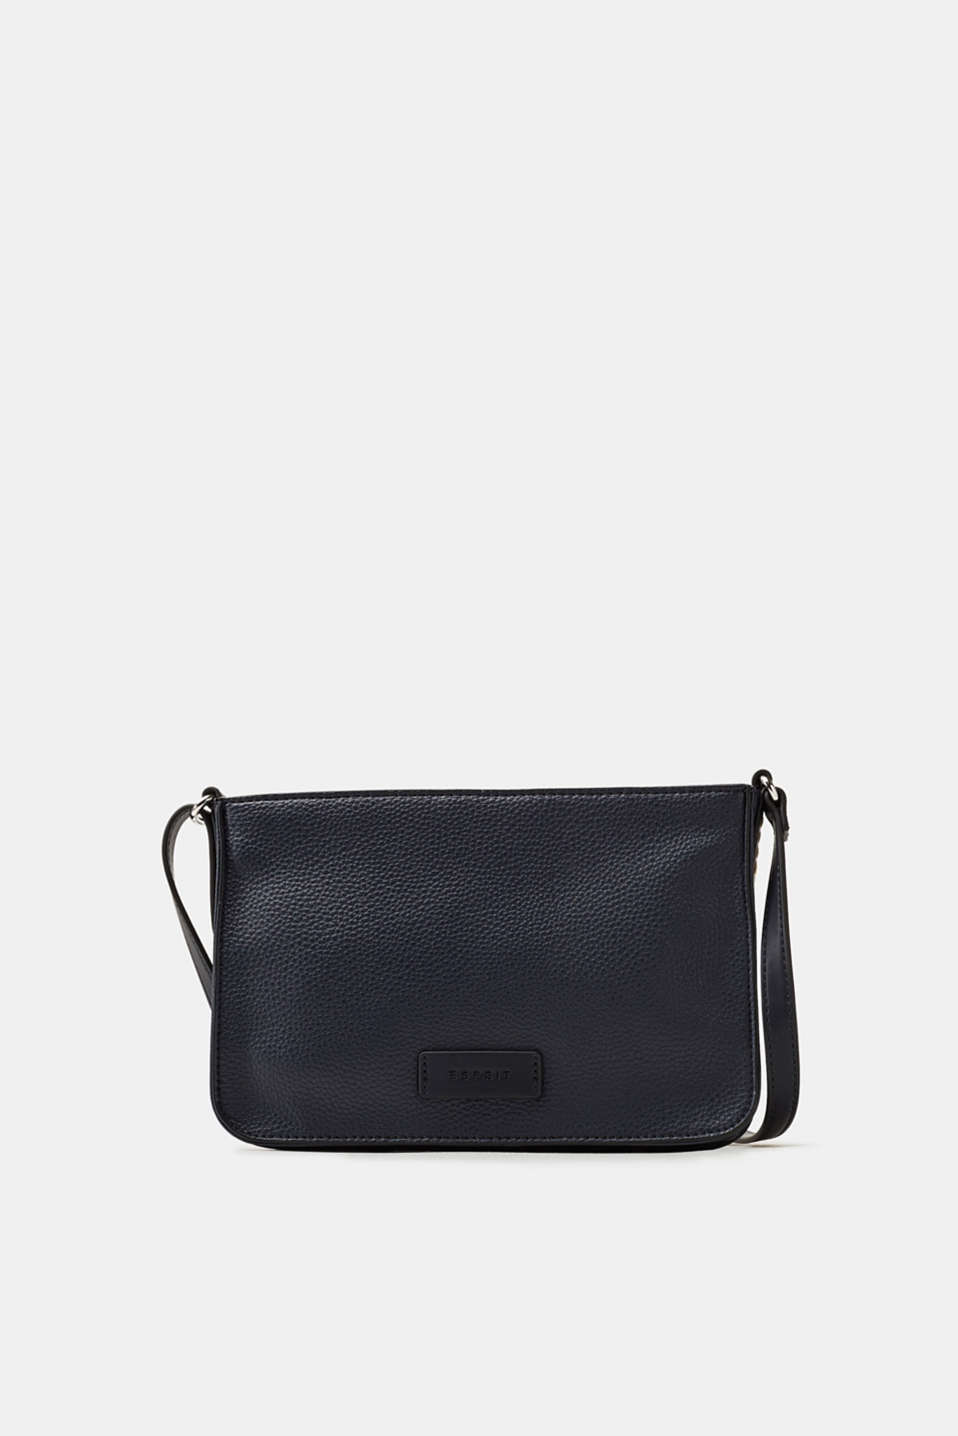 Esprit - Flat shoulder bag in faux leather